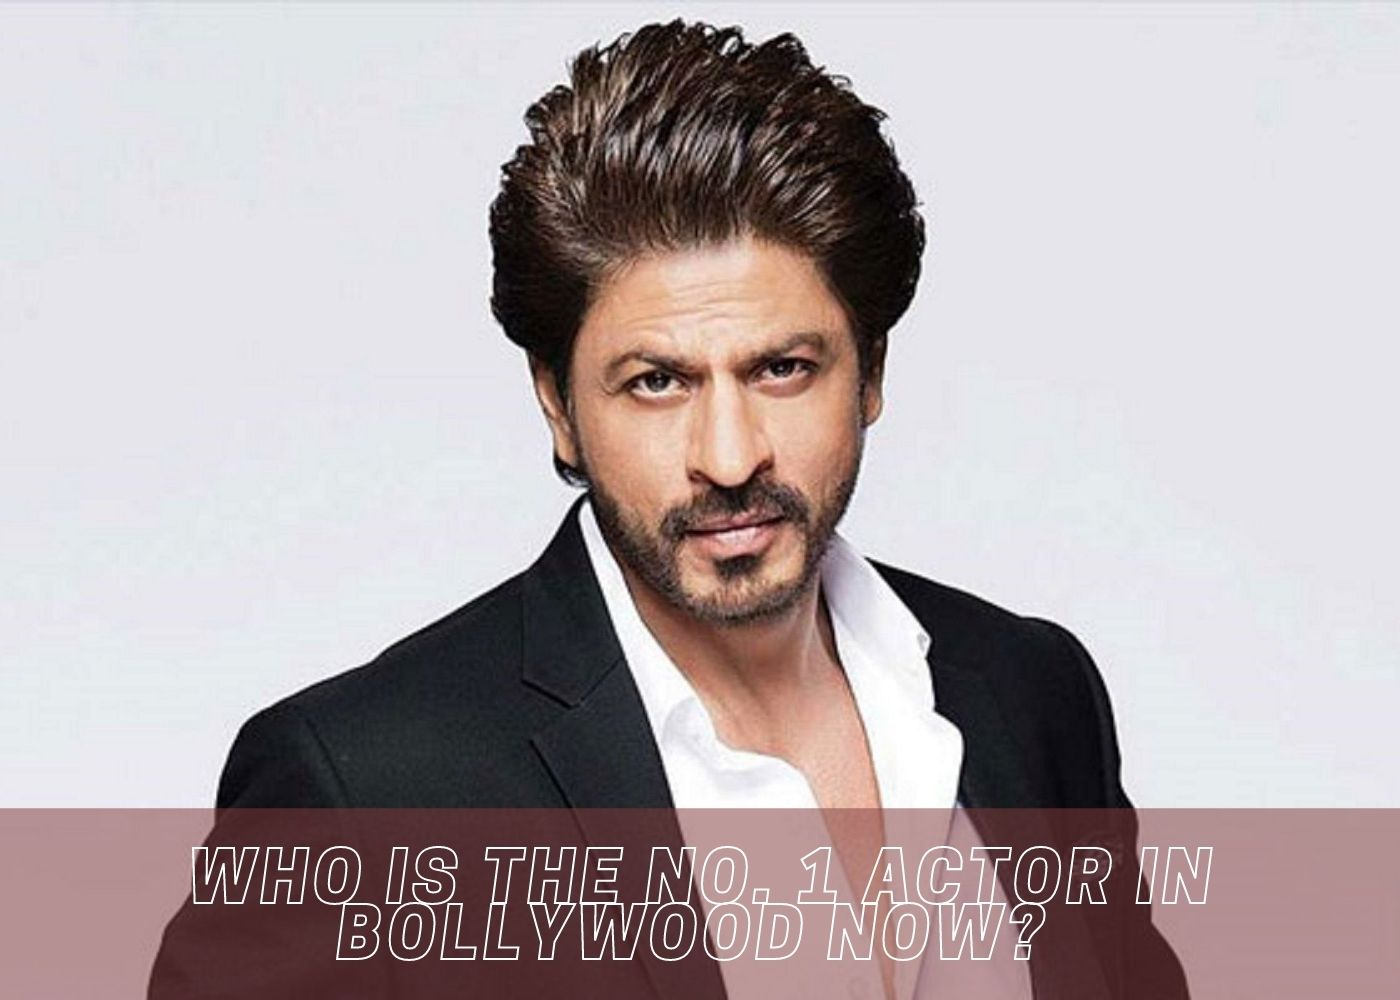 Who is the No. 1 Actor in Bollywood Now?